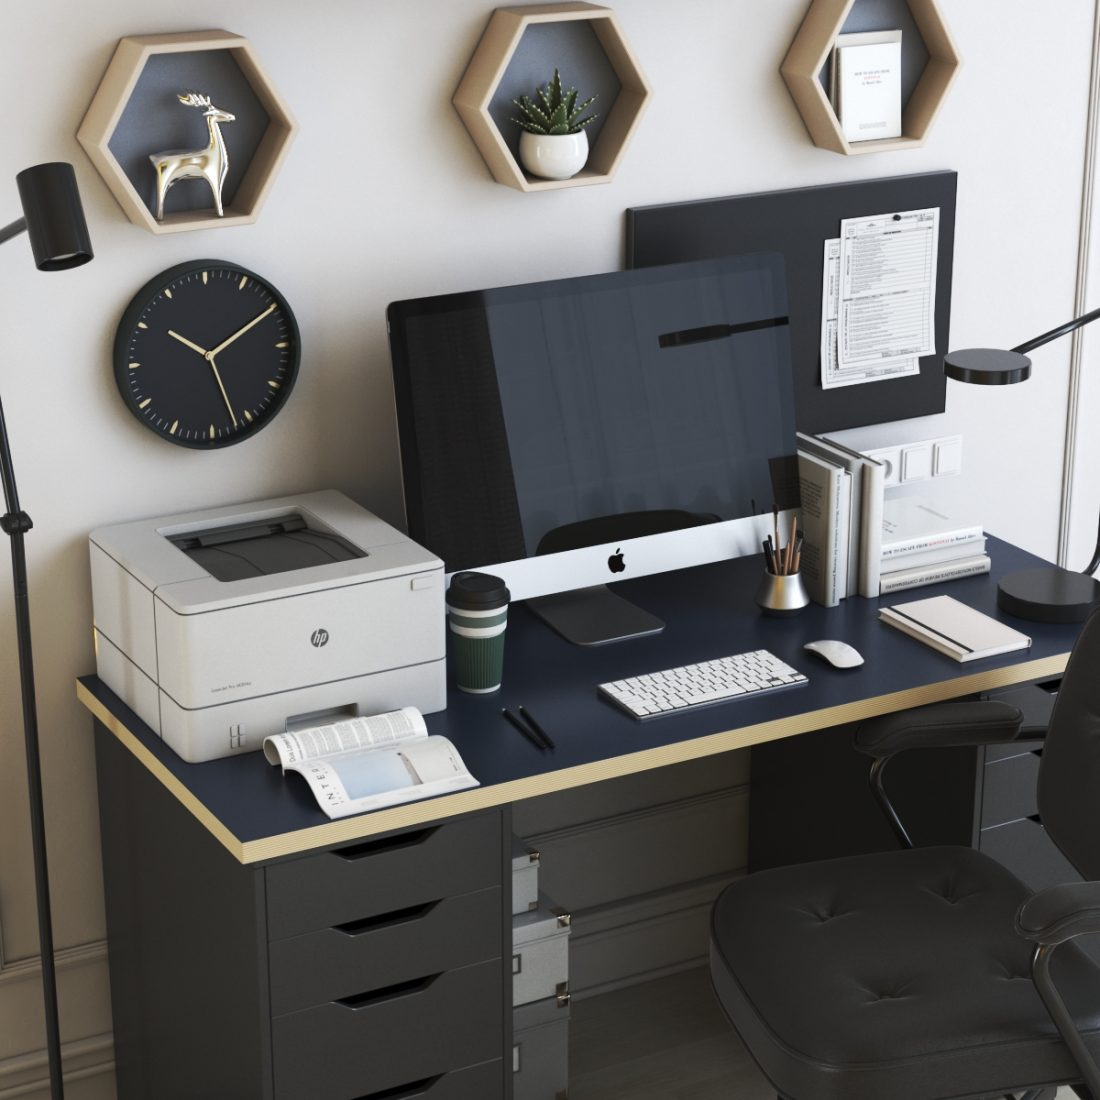 Ikea Office Workplace 42 3d Model For Vray Corona